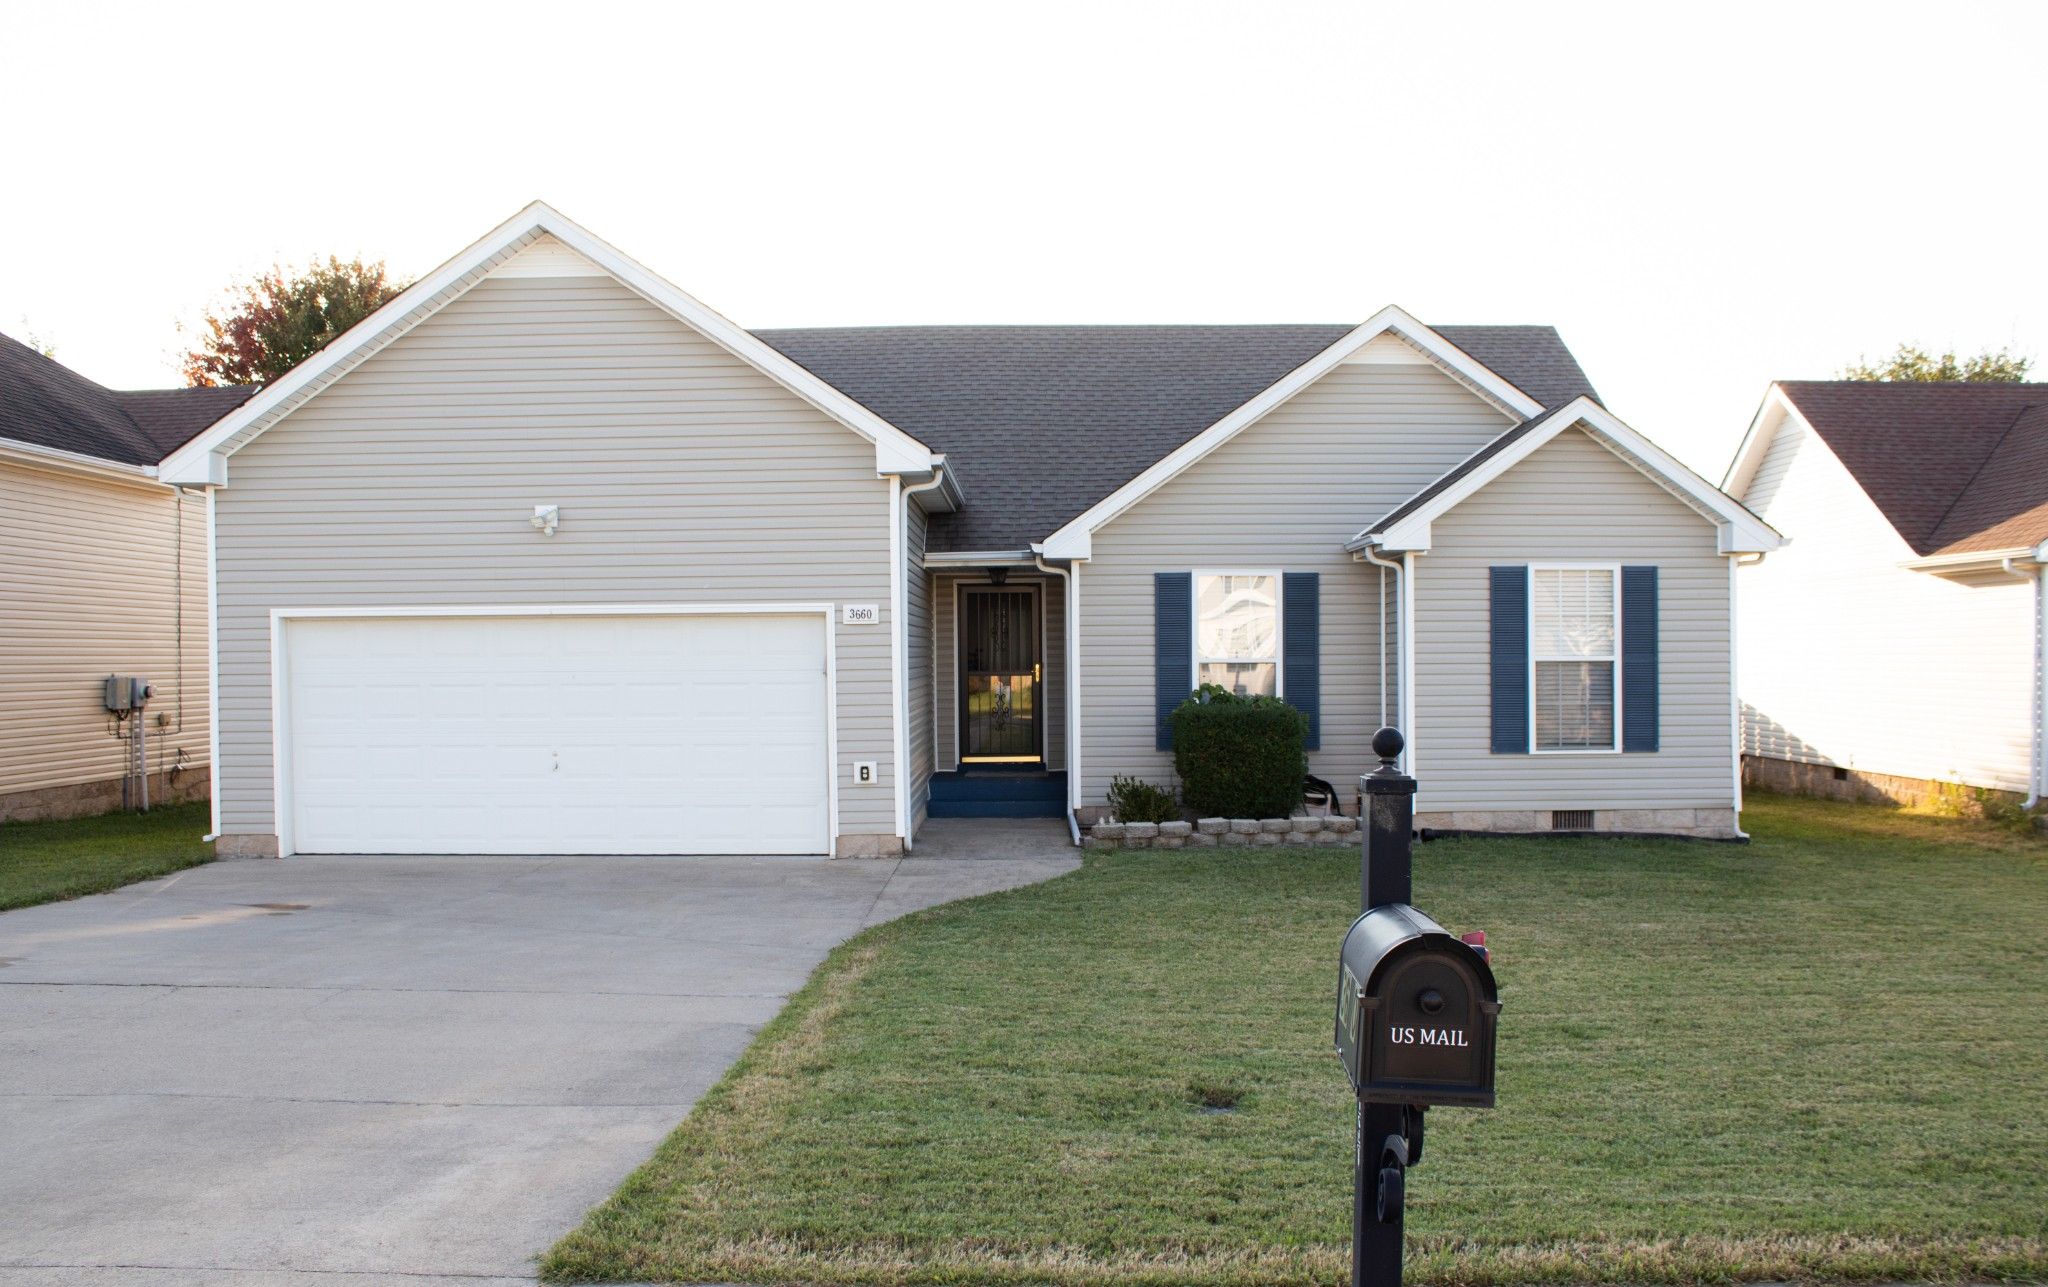 3660 Cindy Jo Dr S Property Photo - Clarksville, TN real estate listing